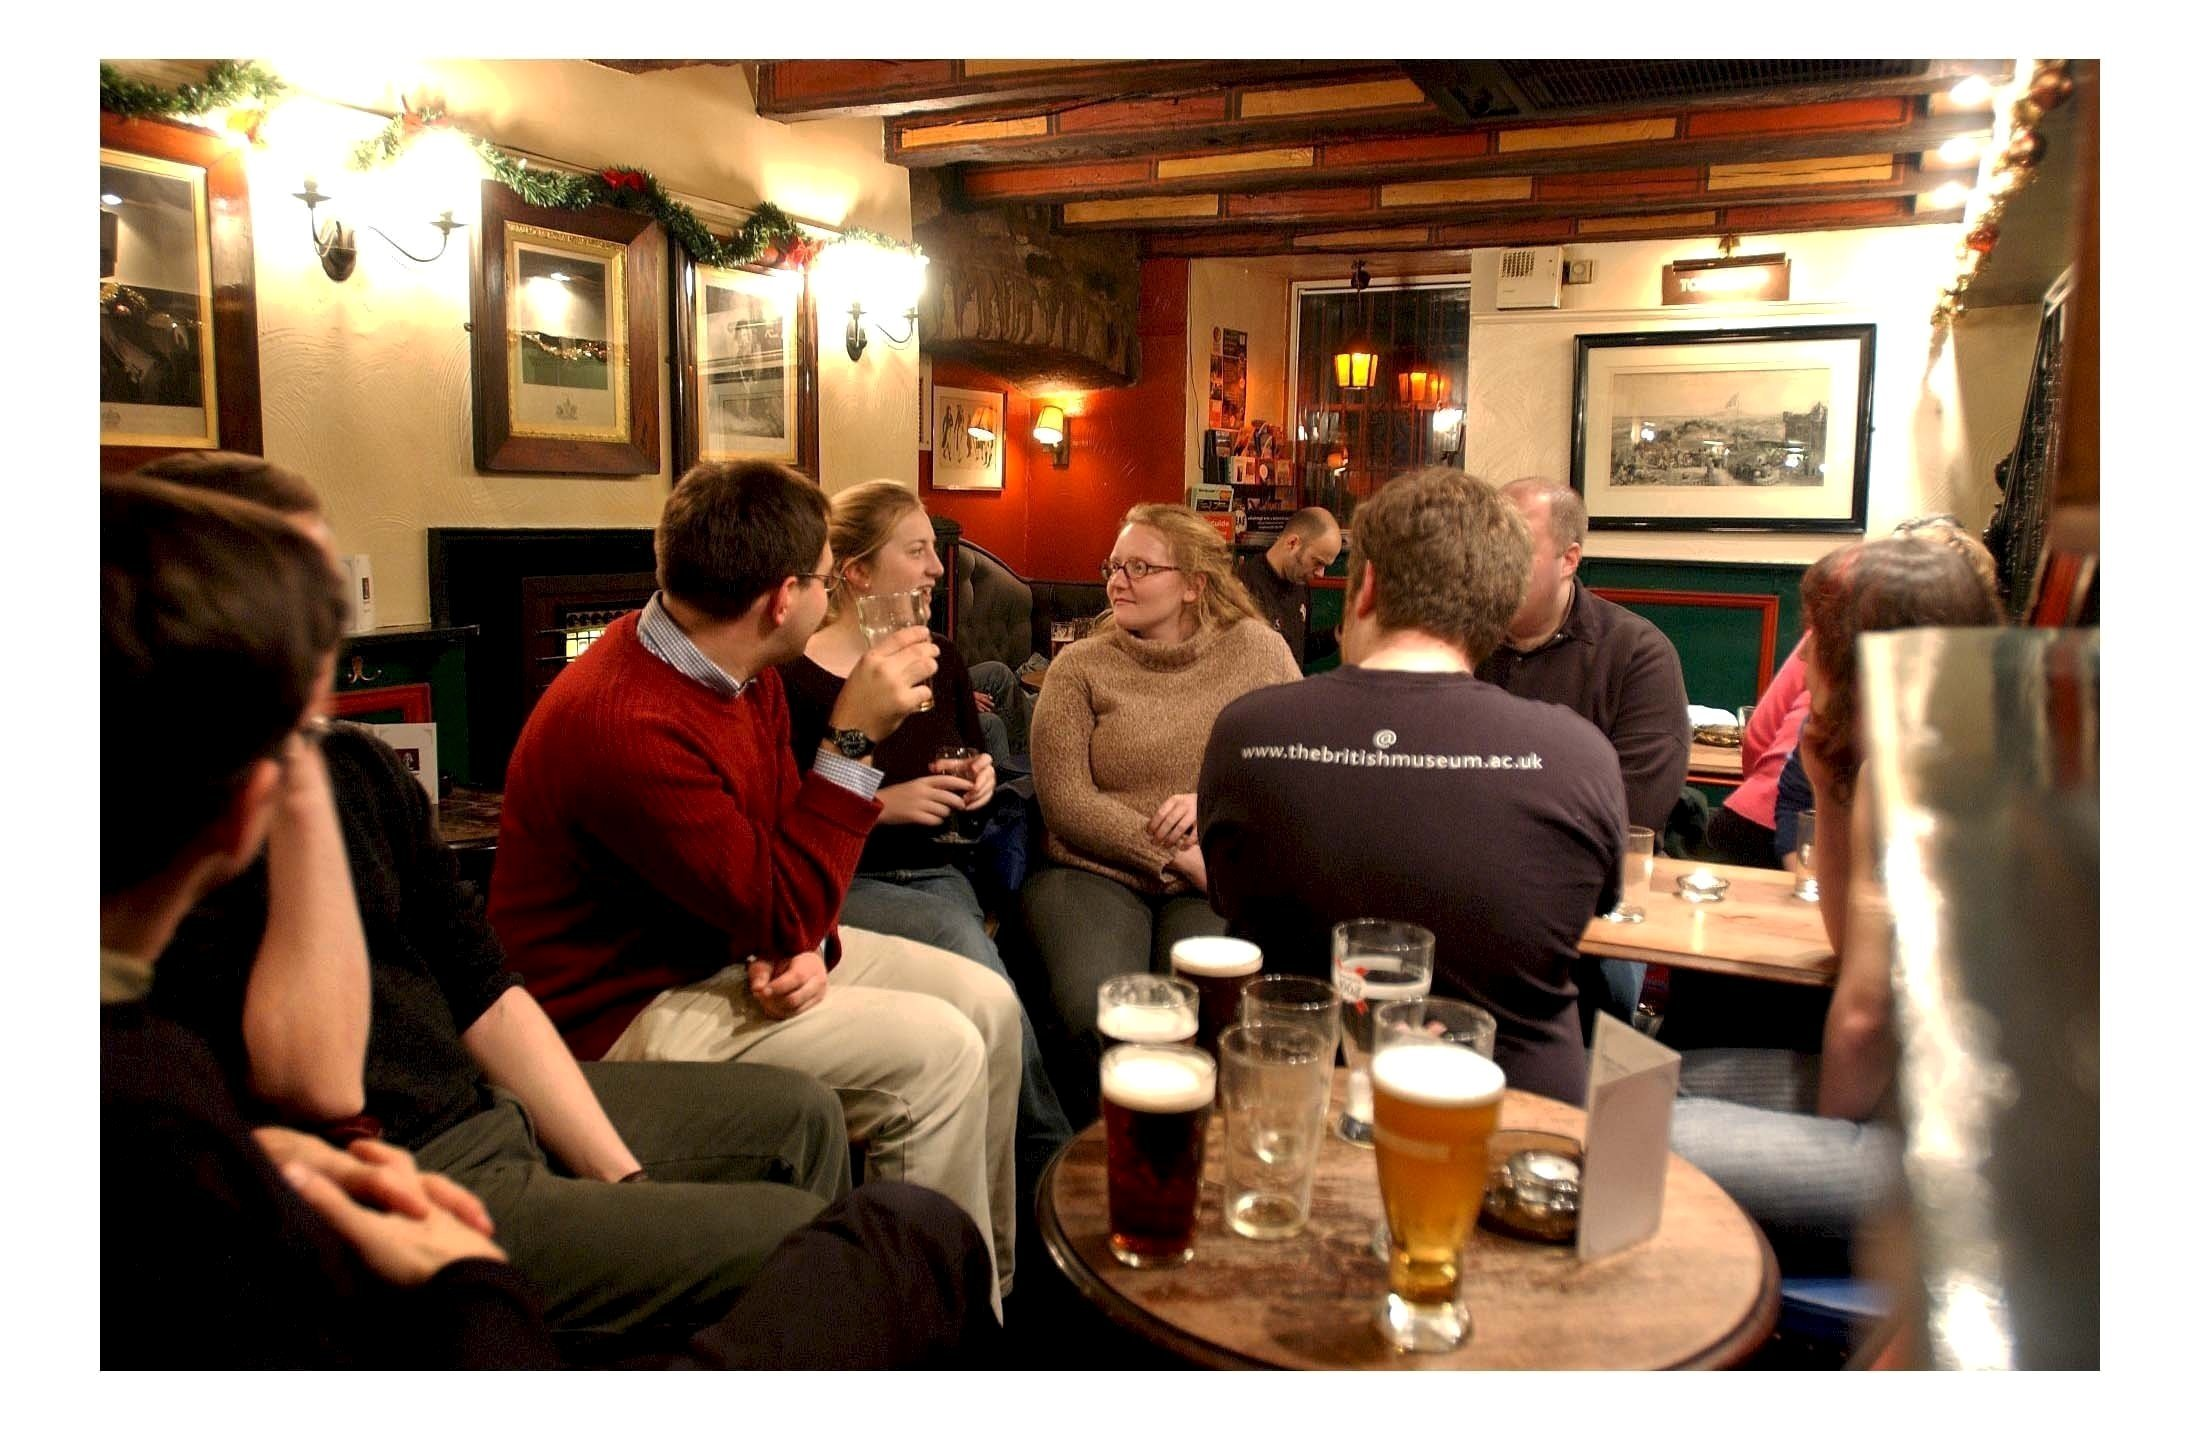 Days out: Scotland's best cosy pubs for winter